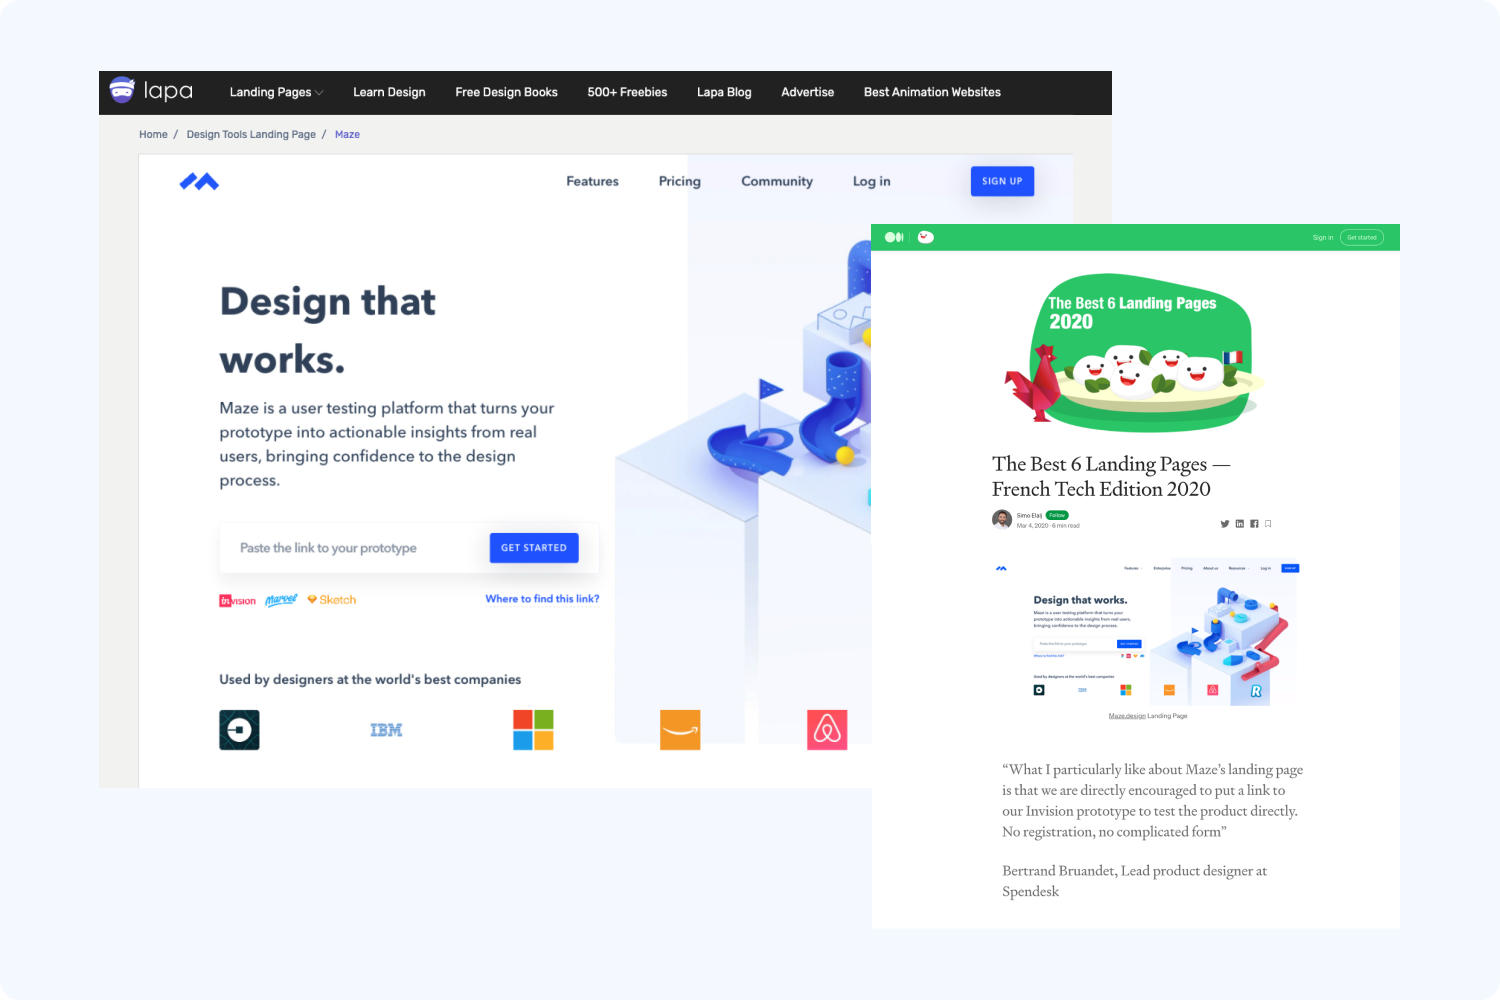 websites featuring Maze's previous homepage